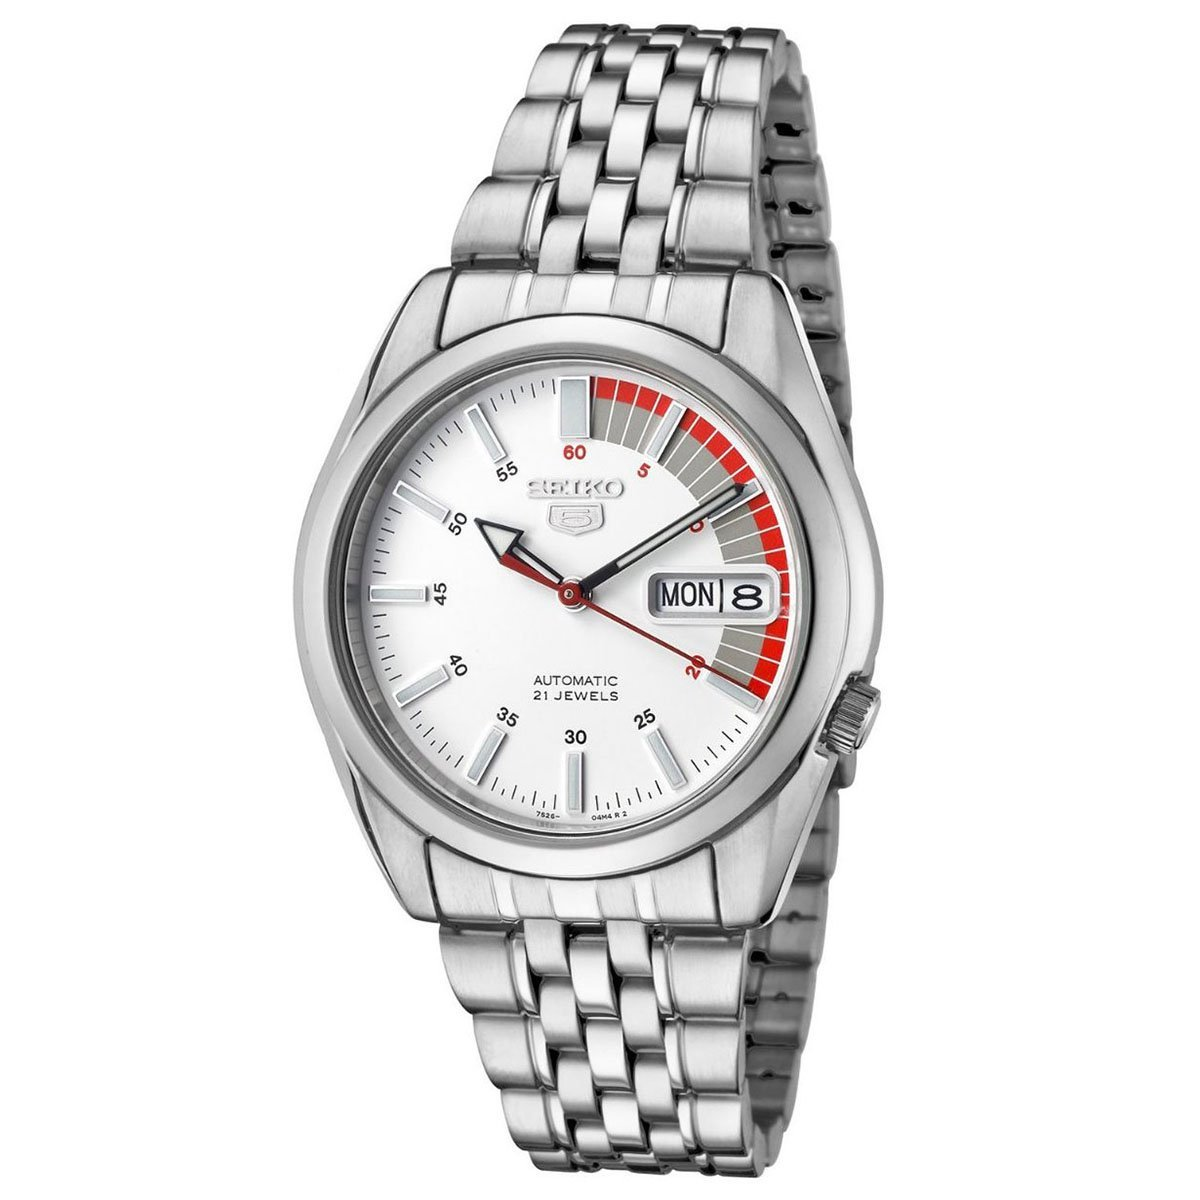 SEIKO 5 automatic watch made ​​in Japan SNK369J1